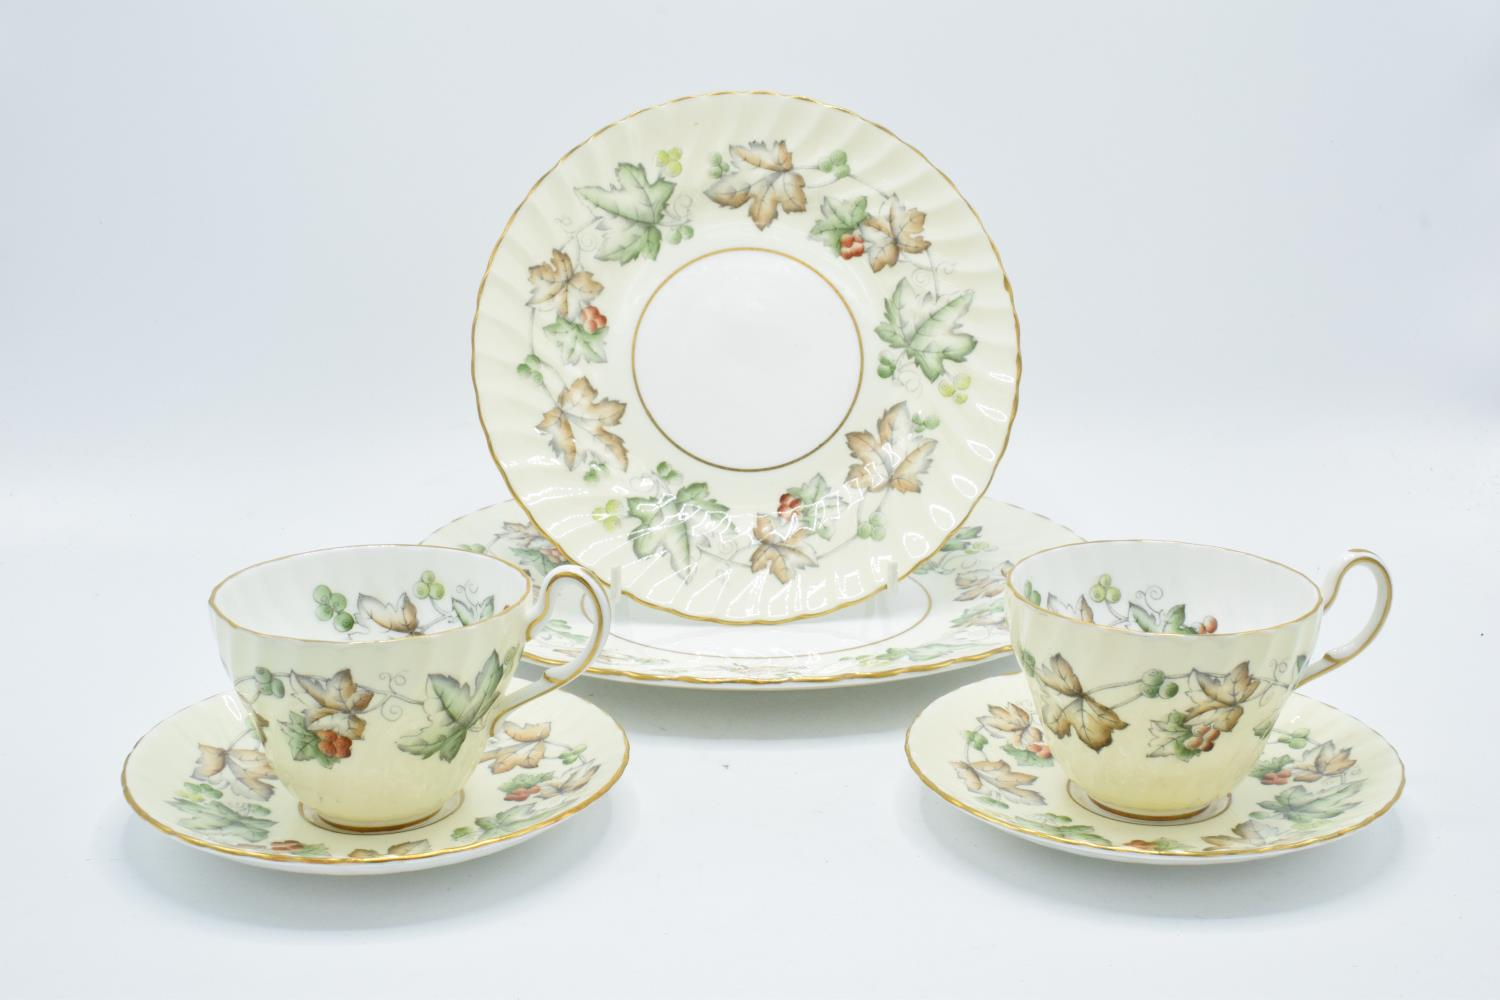 A collection of Foley Avondale tea ware to include 4 duos, 1 spare saucer, 6 8'' side plates and 3